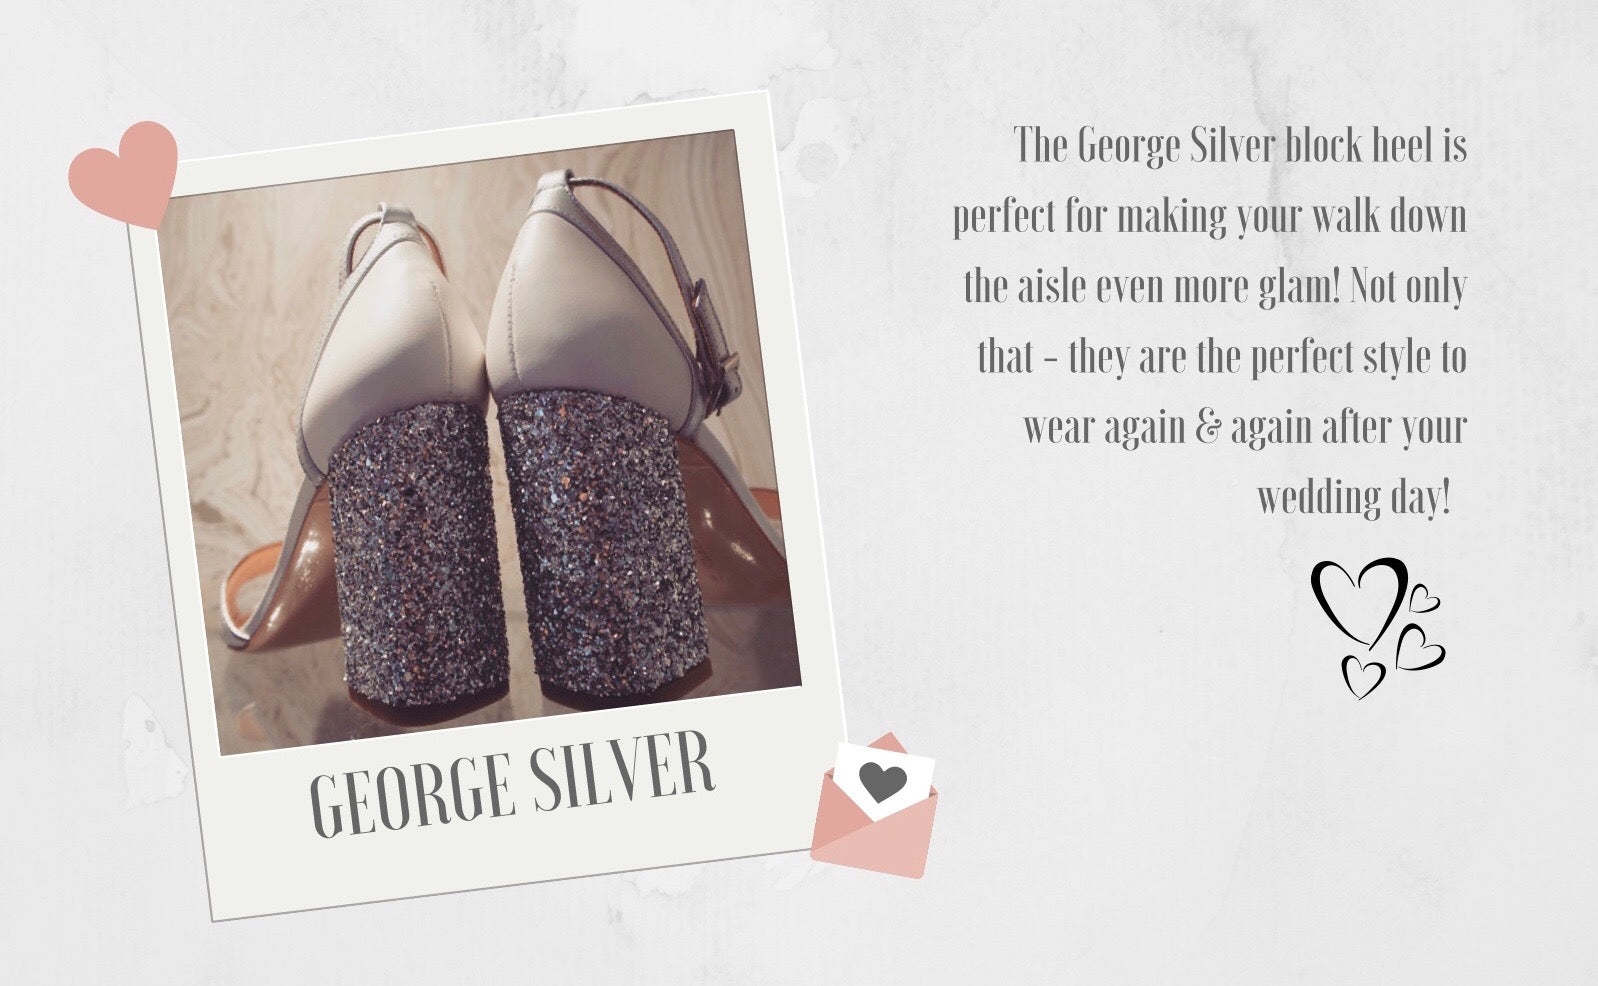 glittery wedding shoes-charlotte mills-bridal shoes-glittery shoes